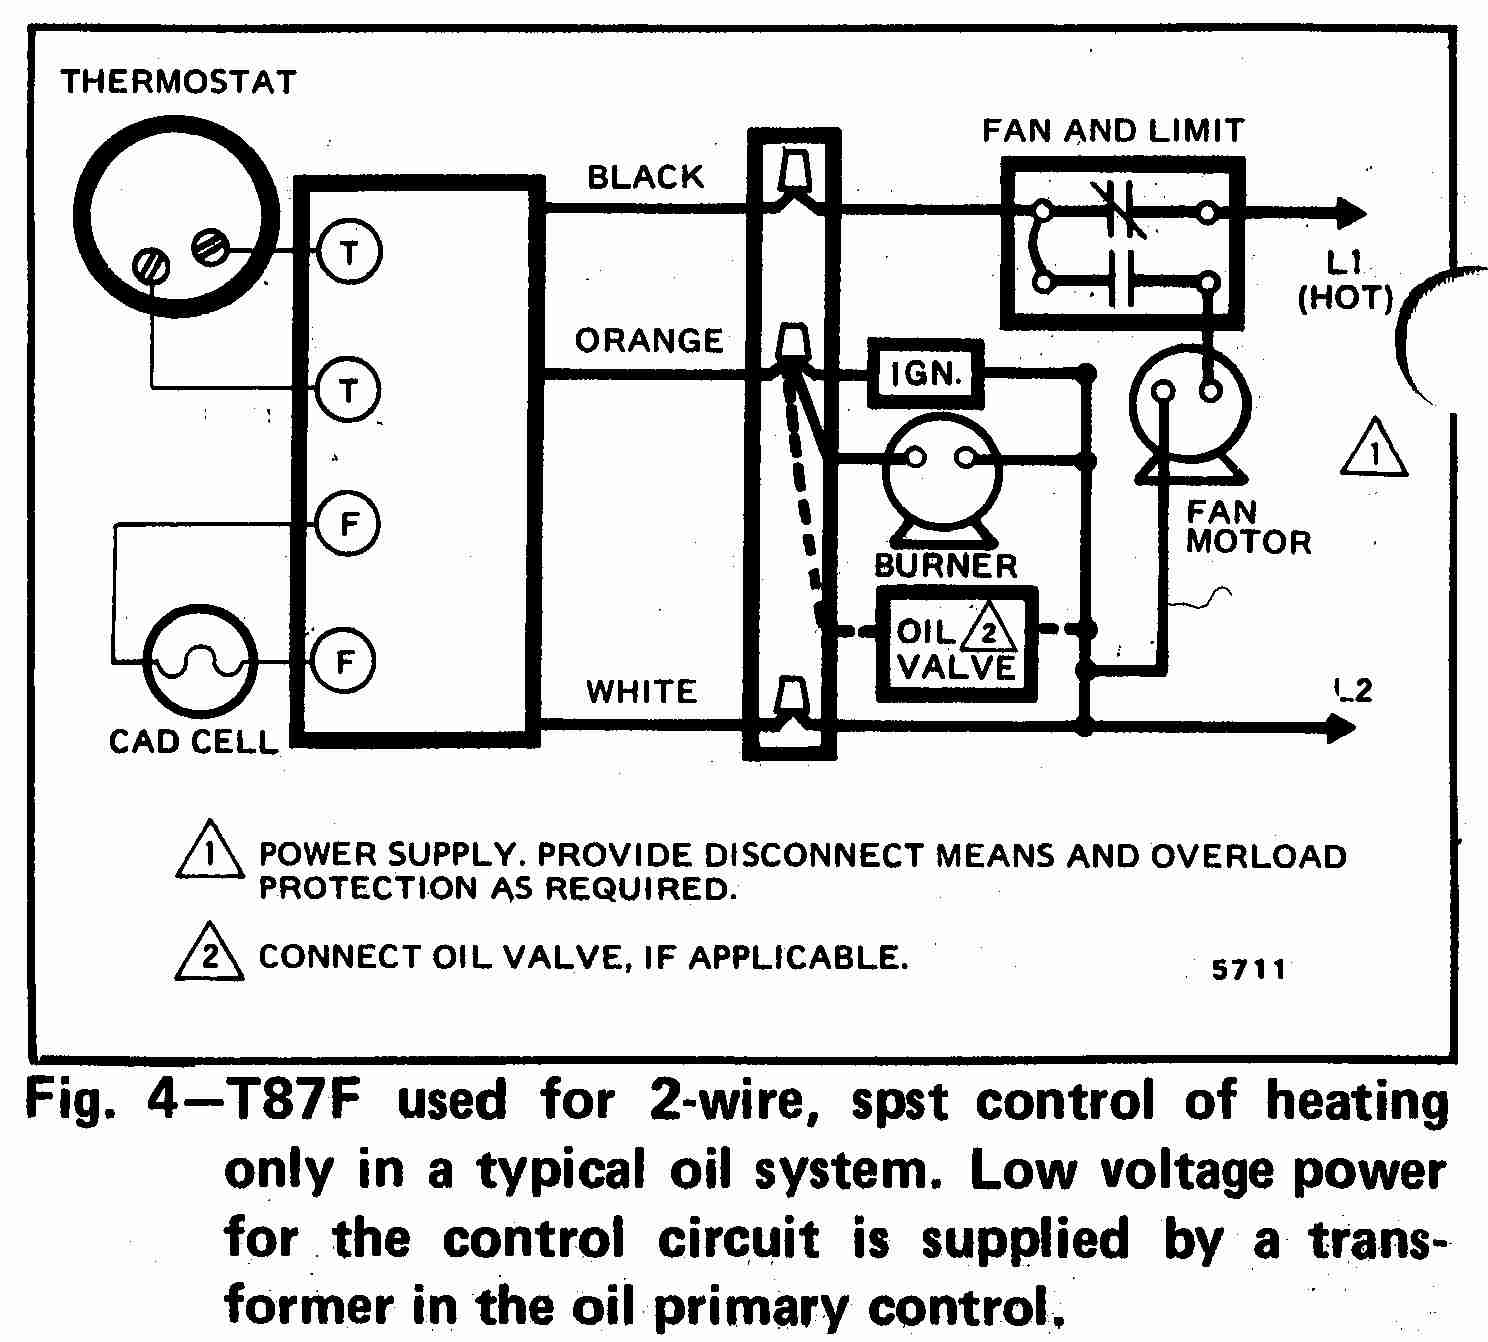 TT_T87F_0002_2W_DJF room thermostat wiring diagrams for hvac systems residential thermostat wiring diagram at eliteediting.co